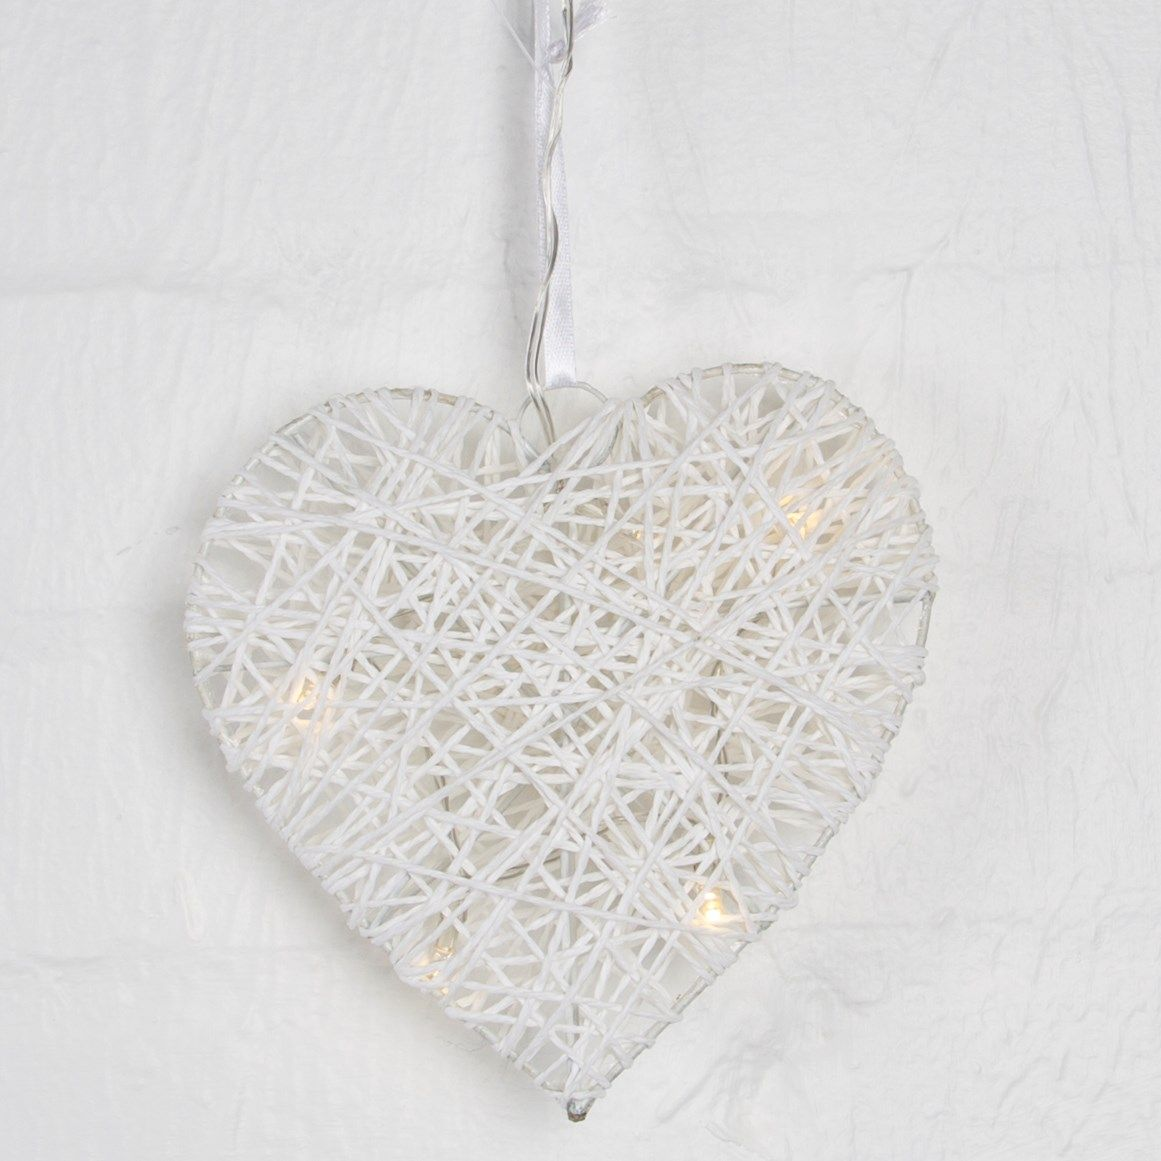 50 Off White Light Up Led Heart Rattan